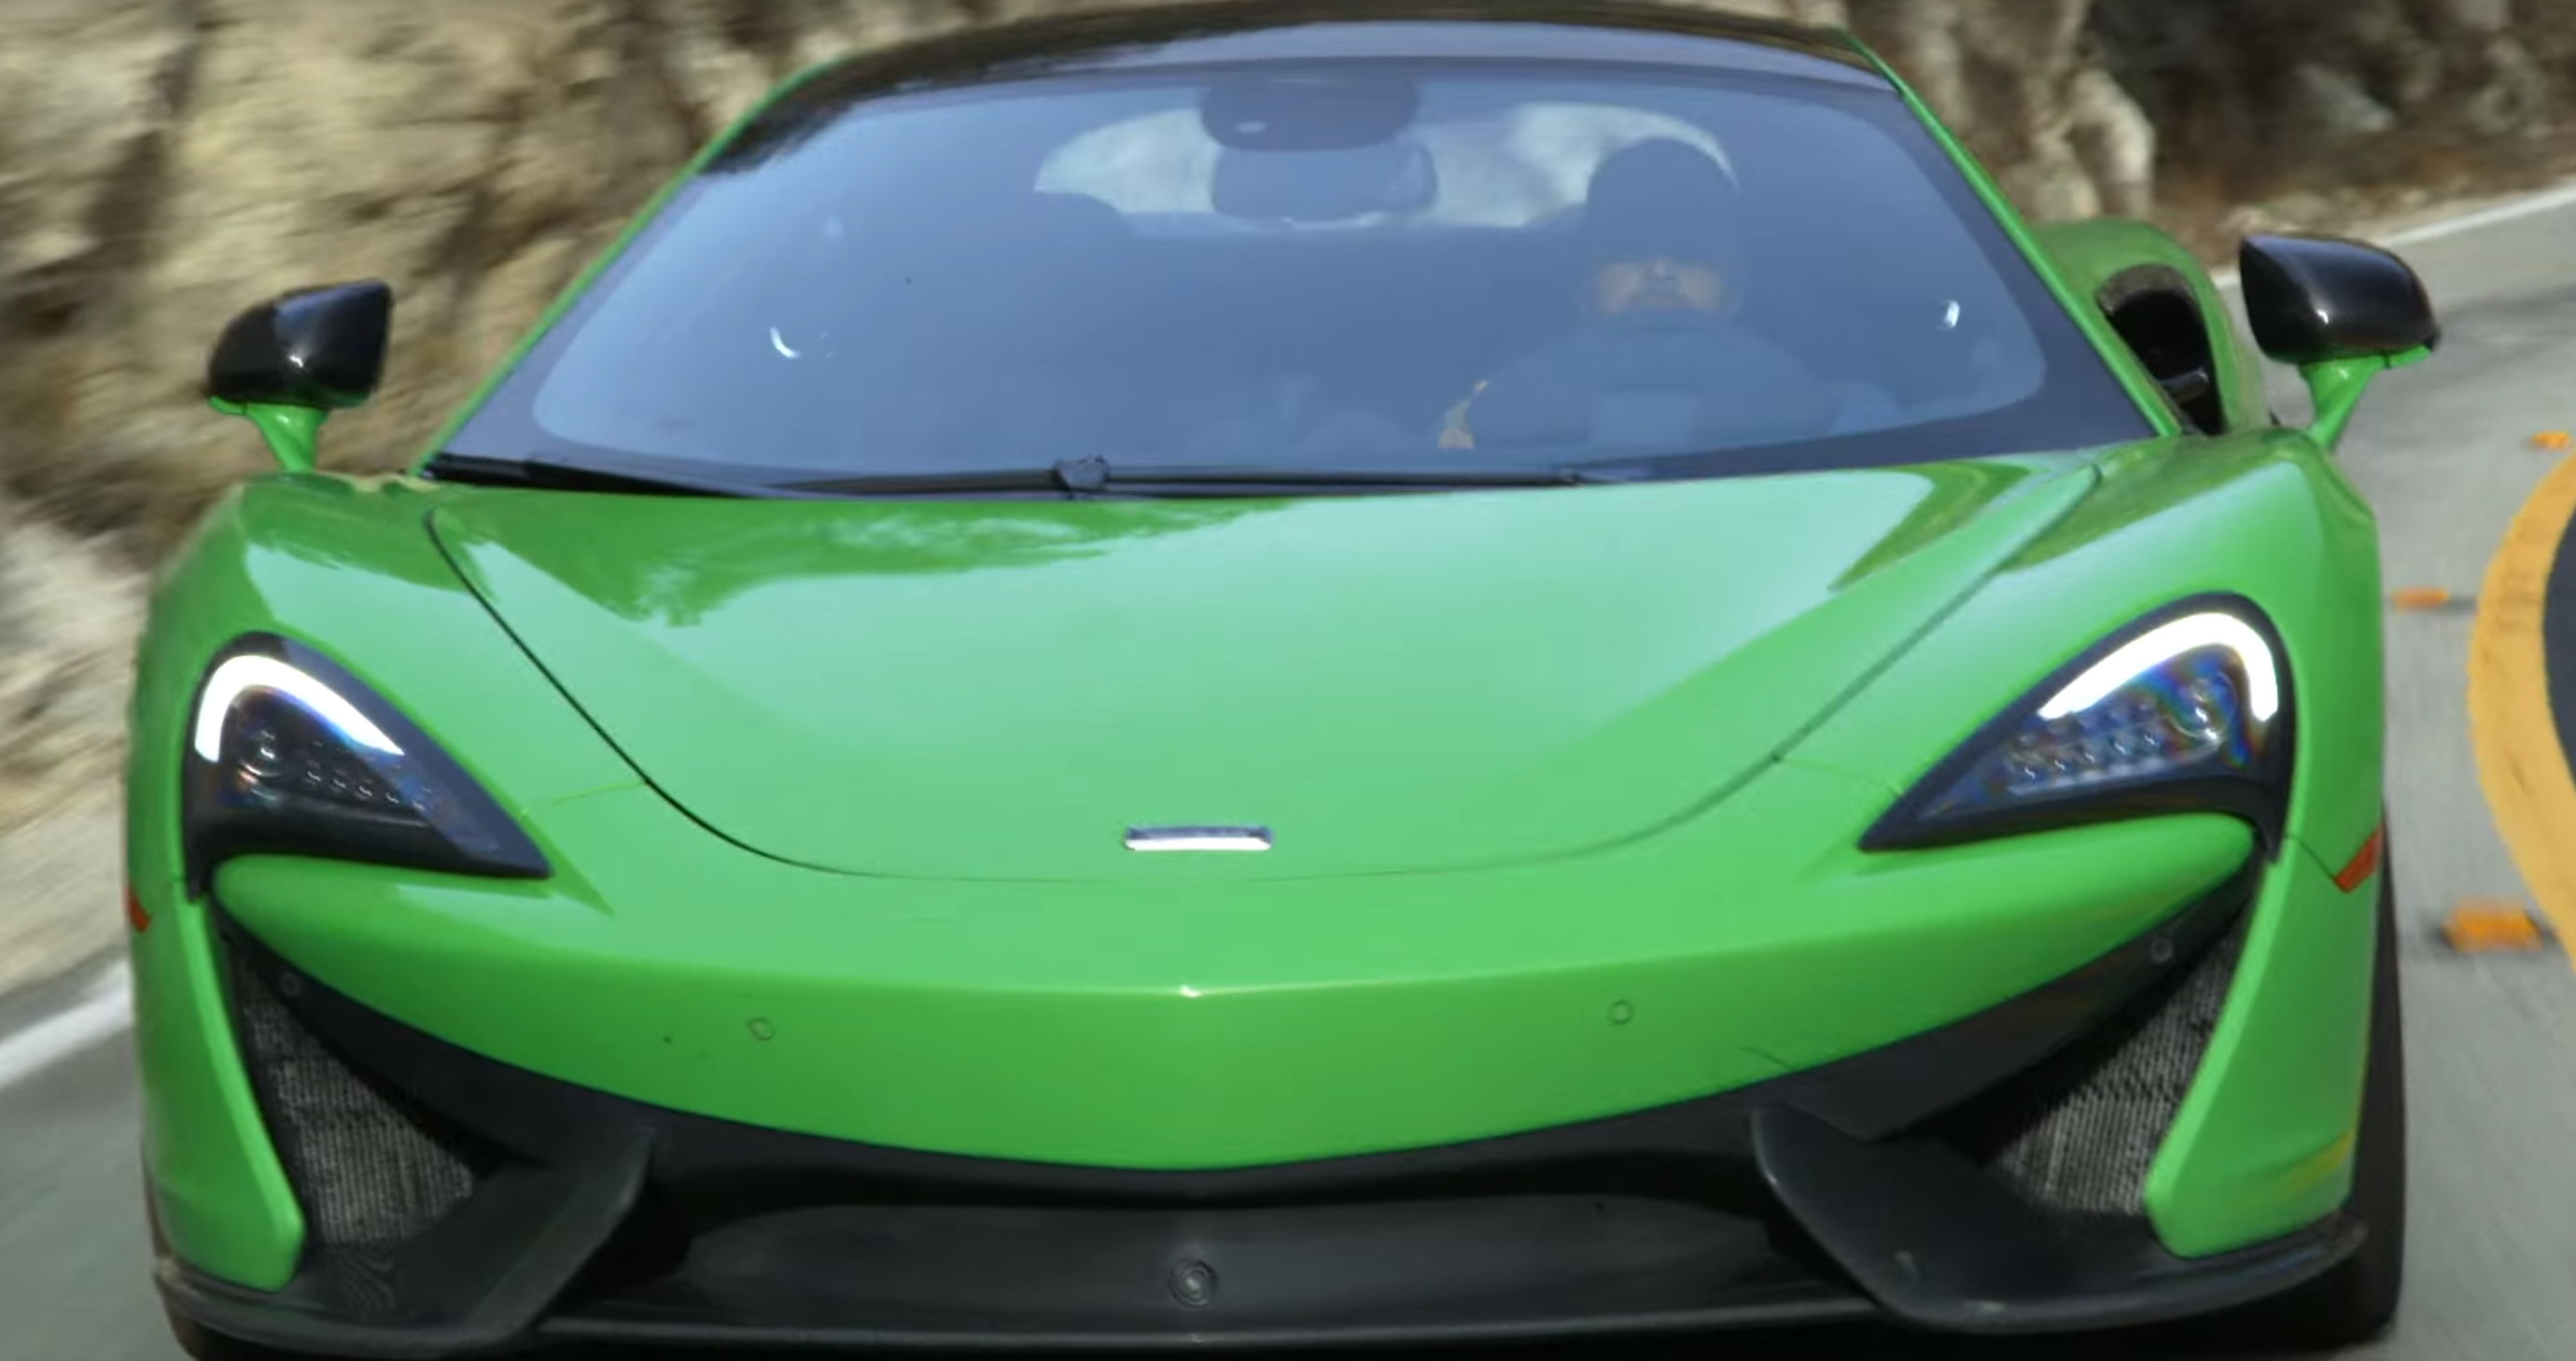 McLaren 570S On Track And Tearing Up Some Twisty Mountain Roads. #cars #supercars #McLaren #570S #videos